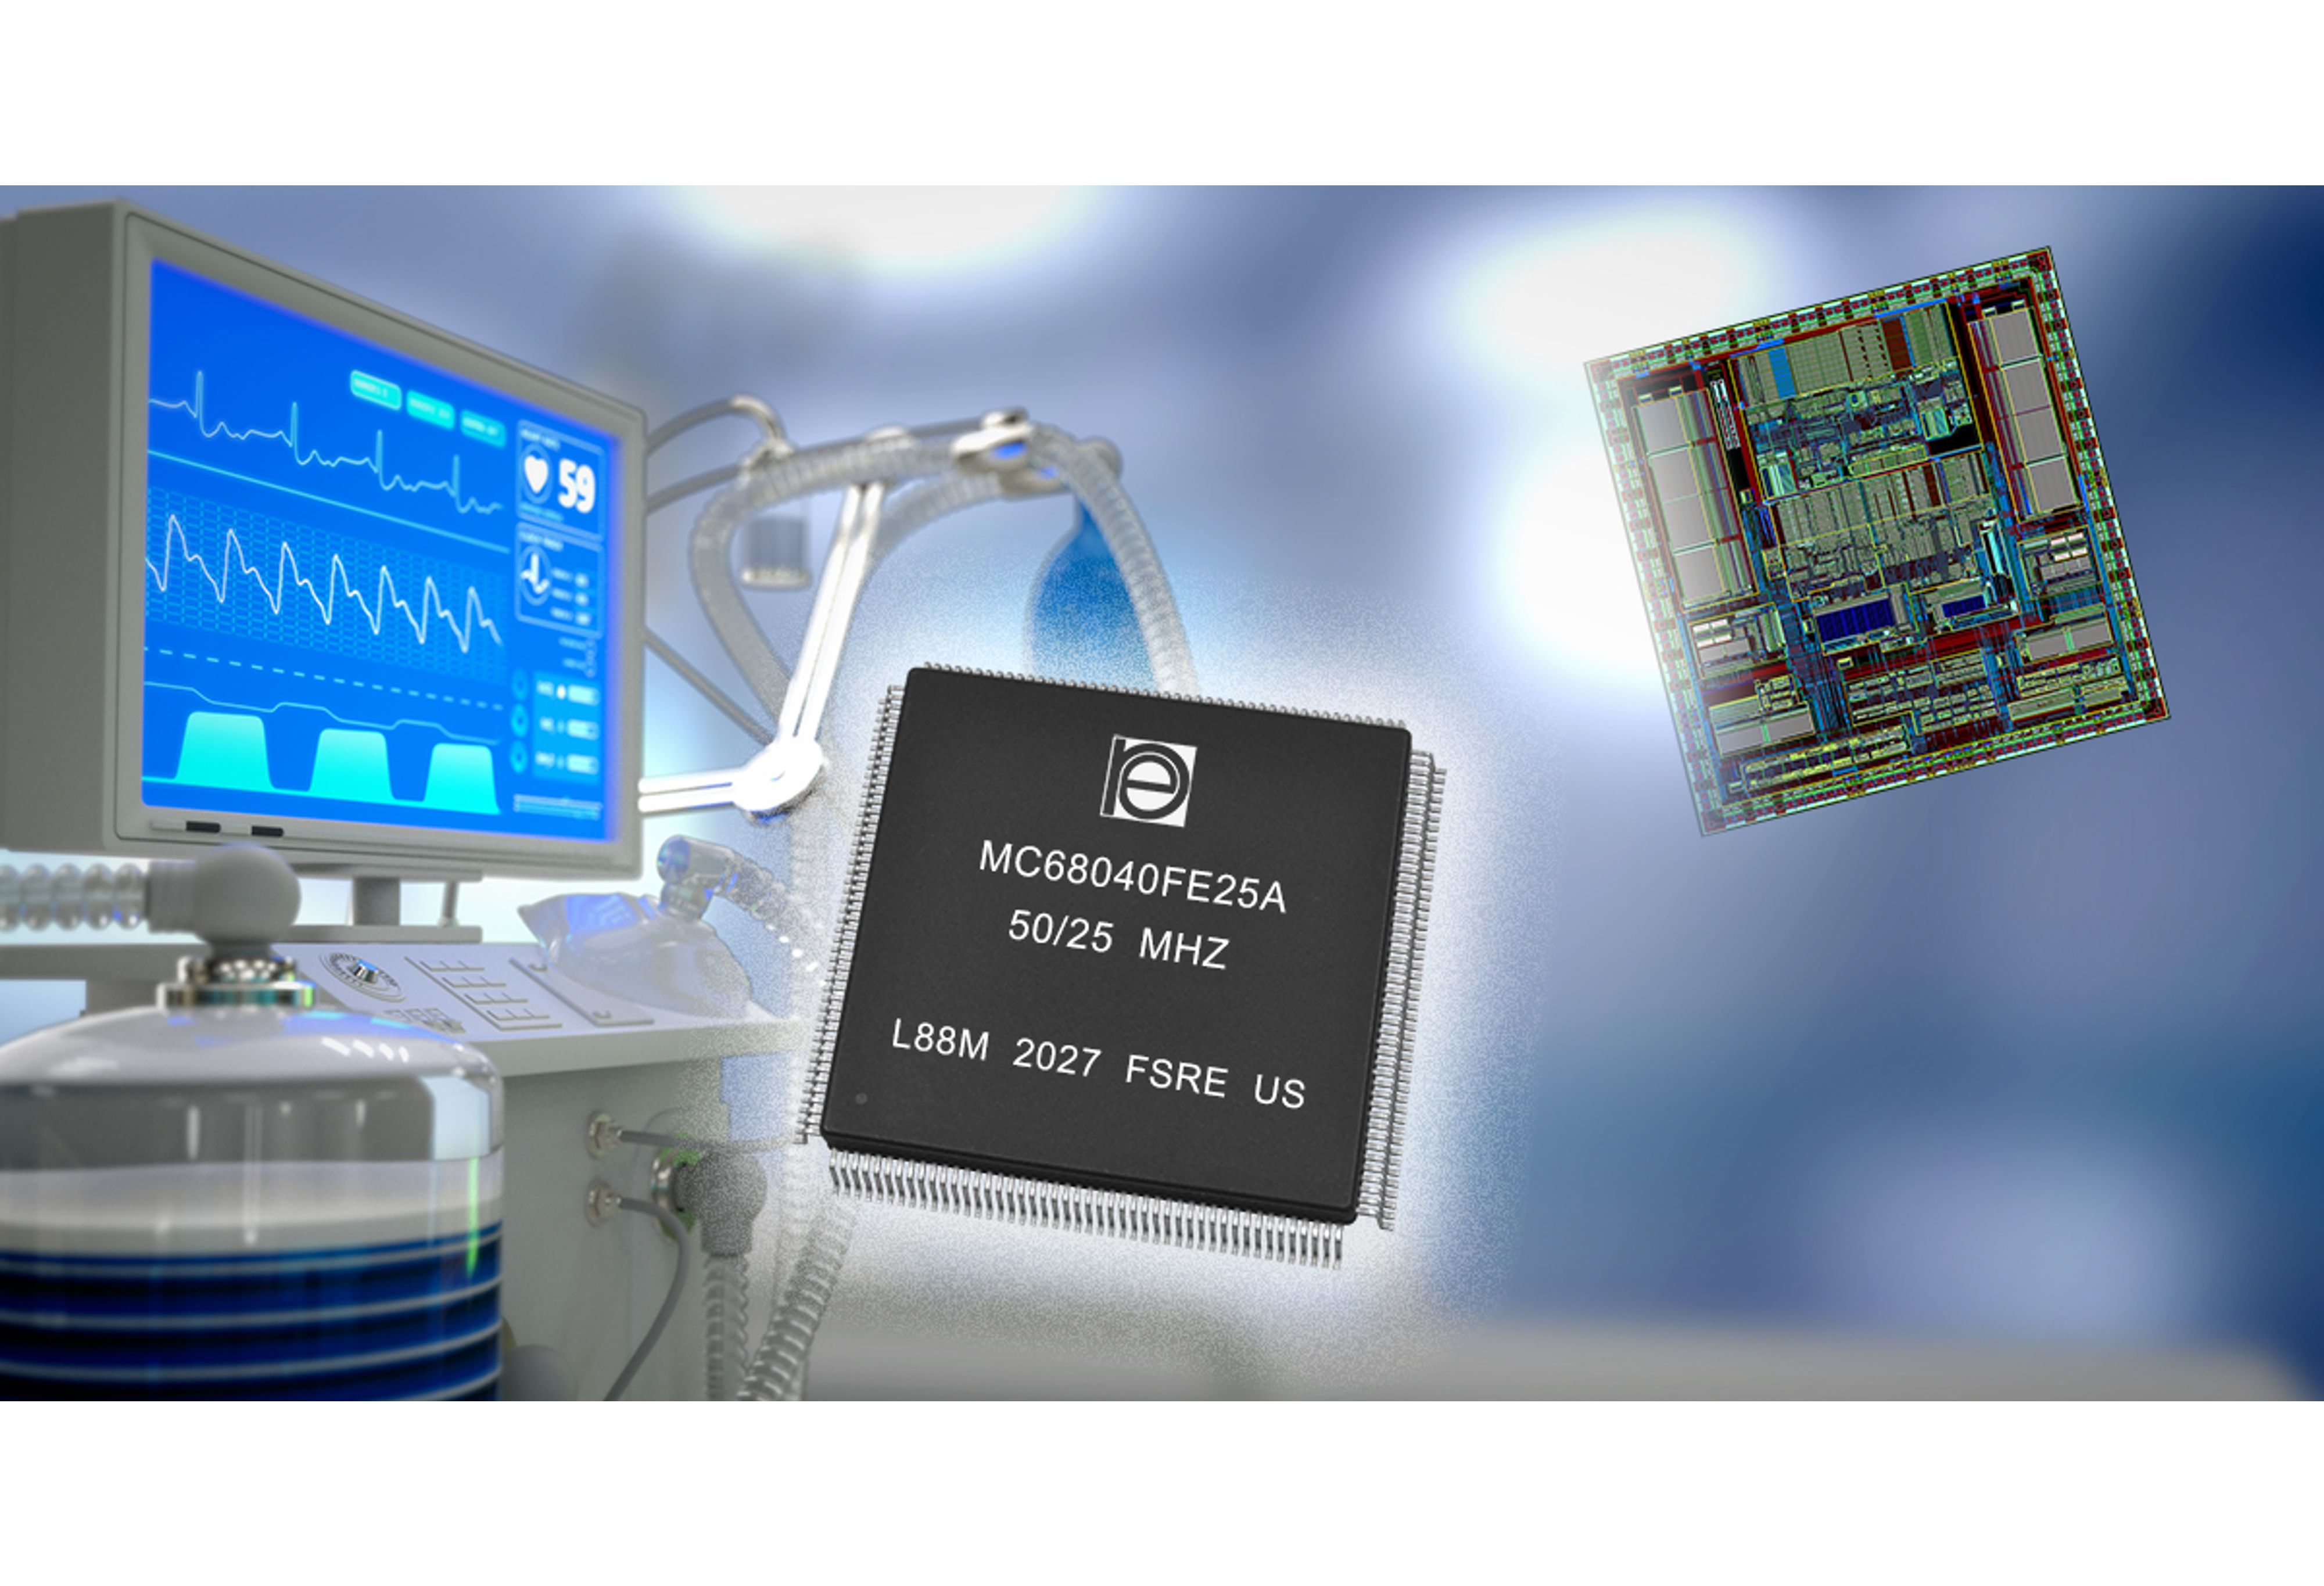 Hermetic Packages for MC68040FE Microcontrollers